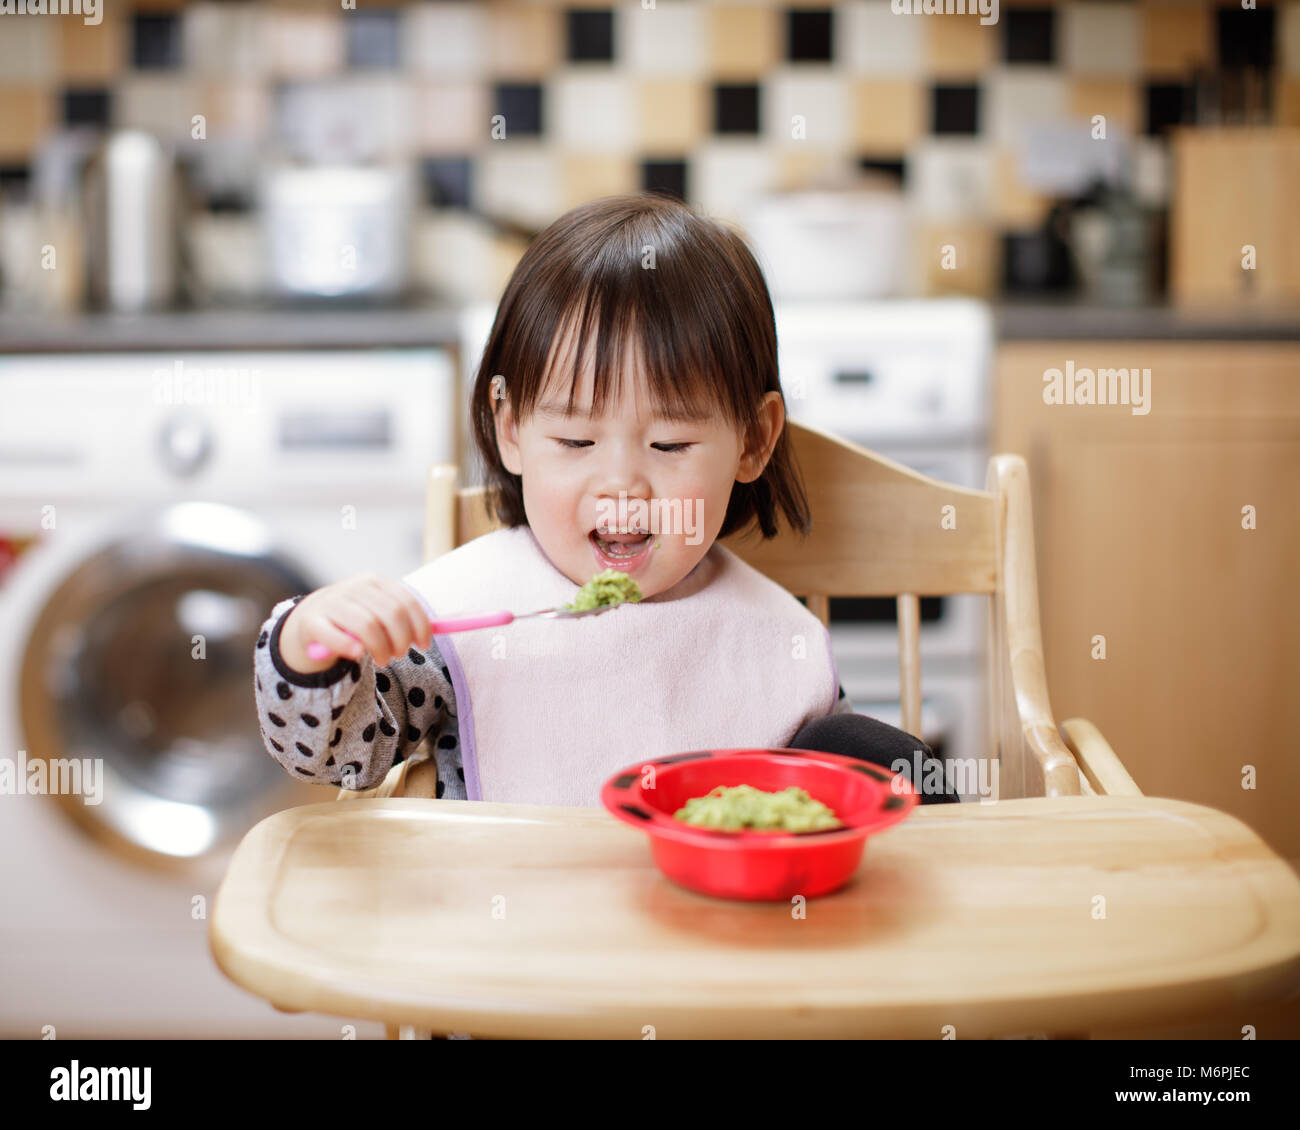 Messy Kitchen Catering: Asian Family Eating Dinner Table Stock Photos & Asian